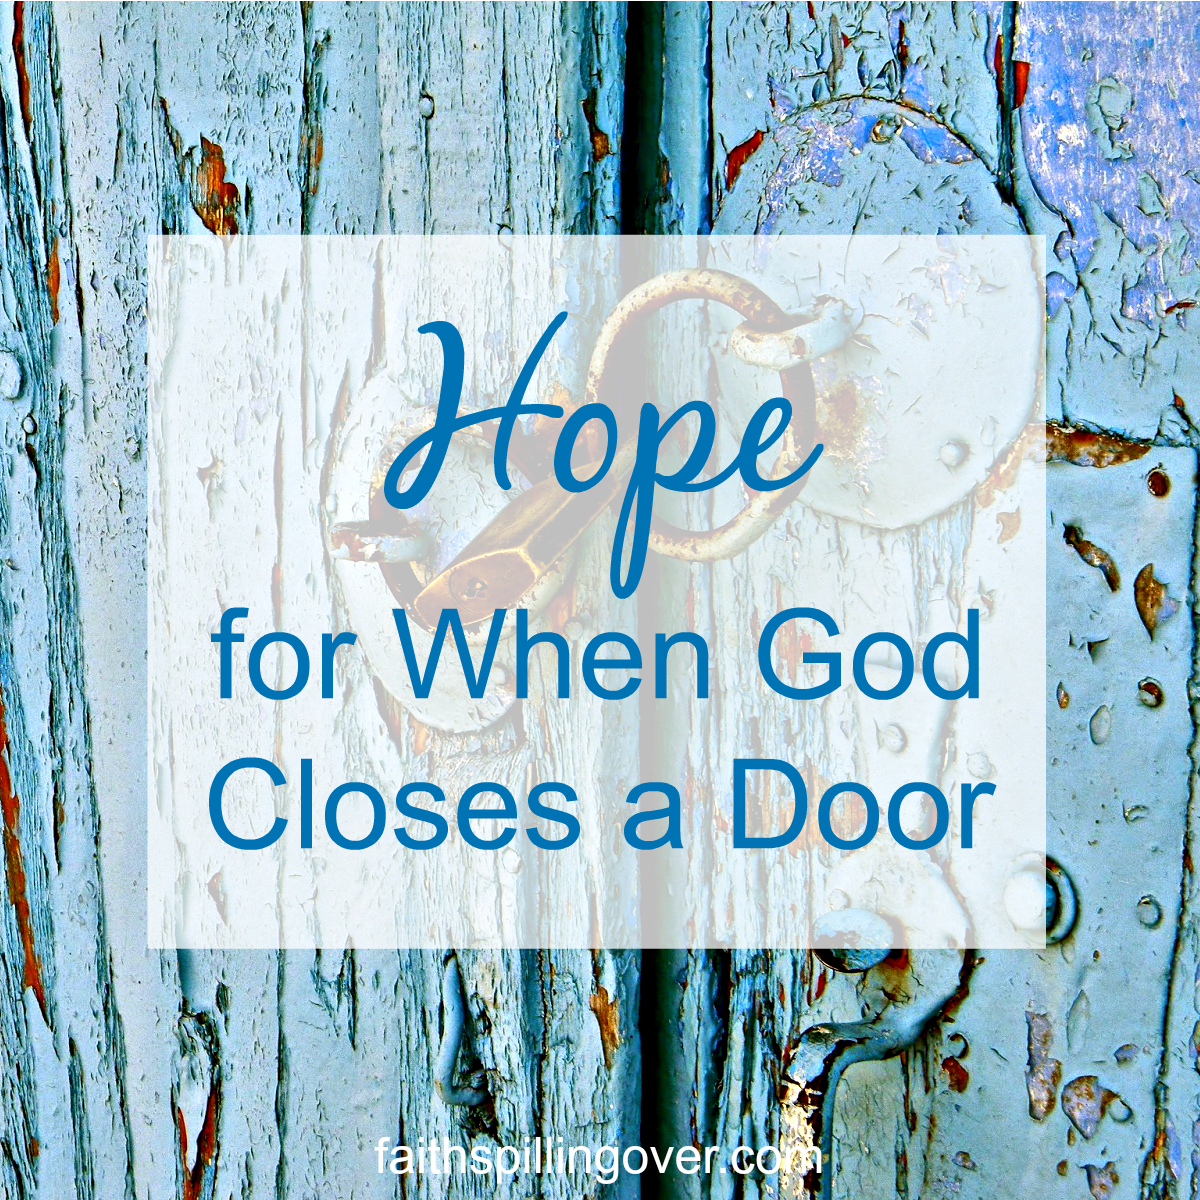 Closed doors disappoint us, but we can always trust God's leading. If He never closed any doors, we wouldn't know which ones to go through.